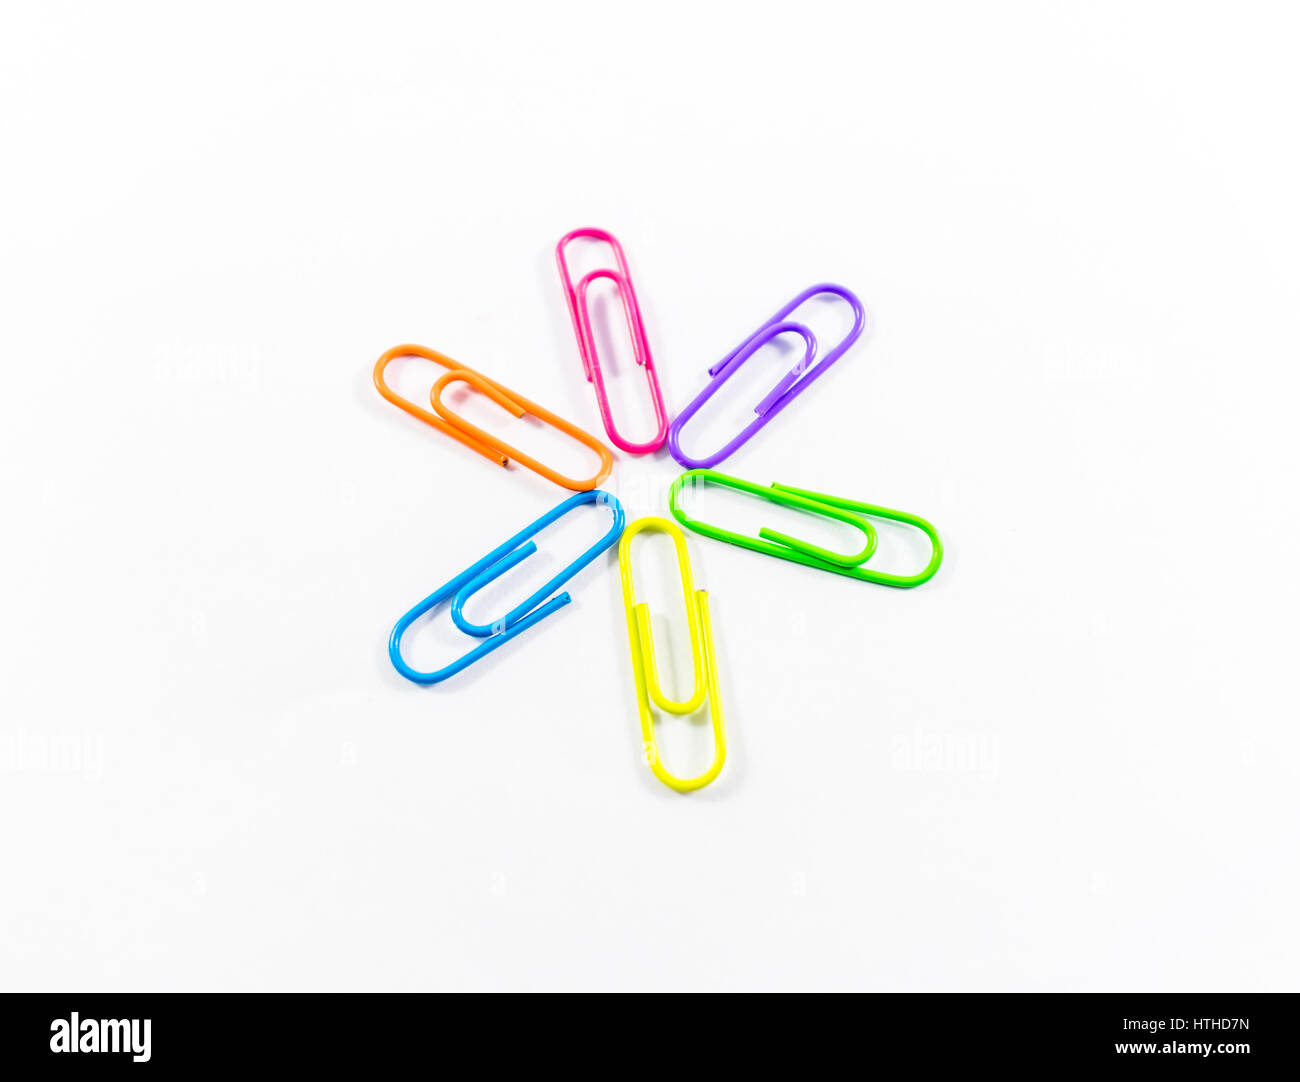 Office paper clips isolated on white background - Stock Image